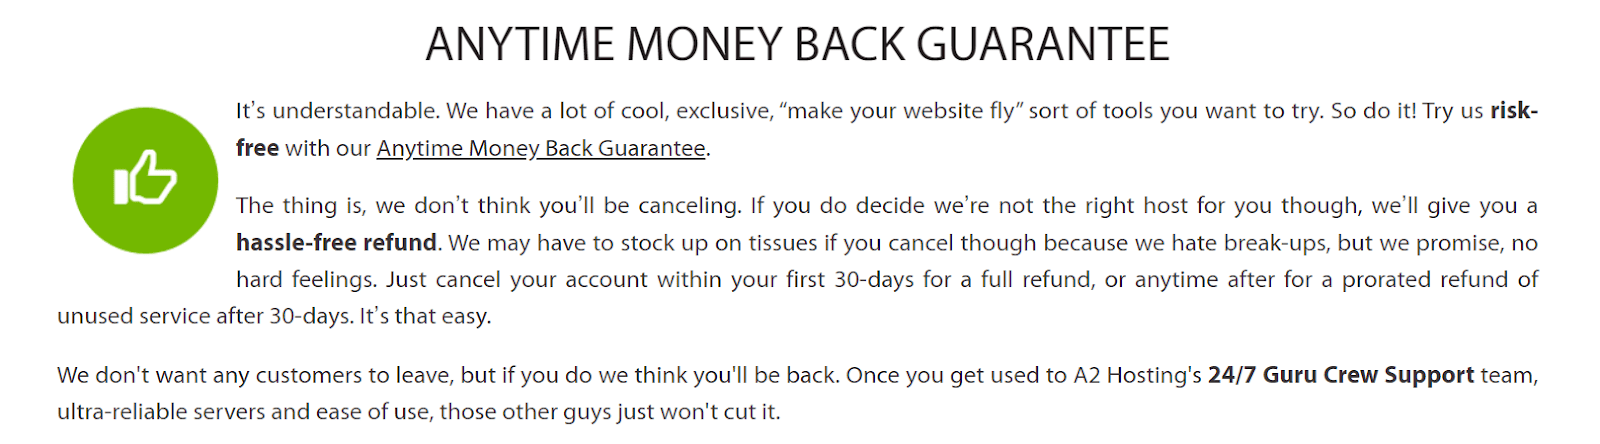 A2 Hosting's anytime money back guarantee